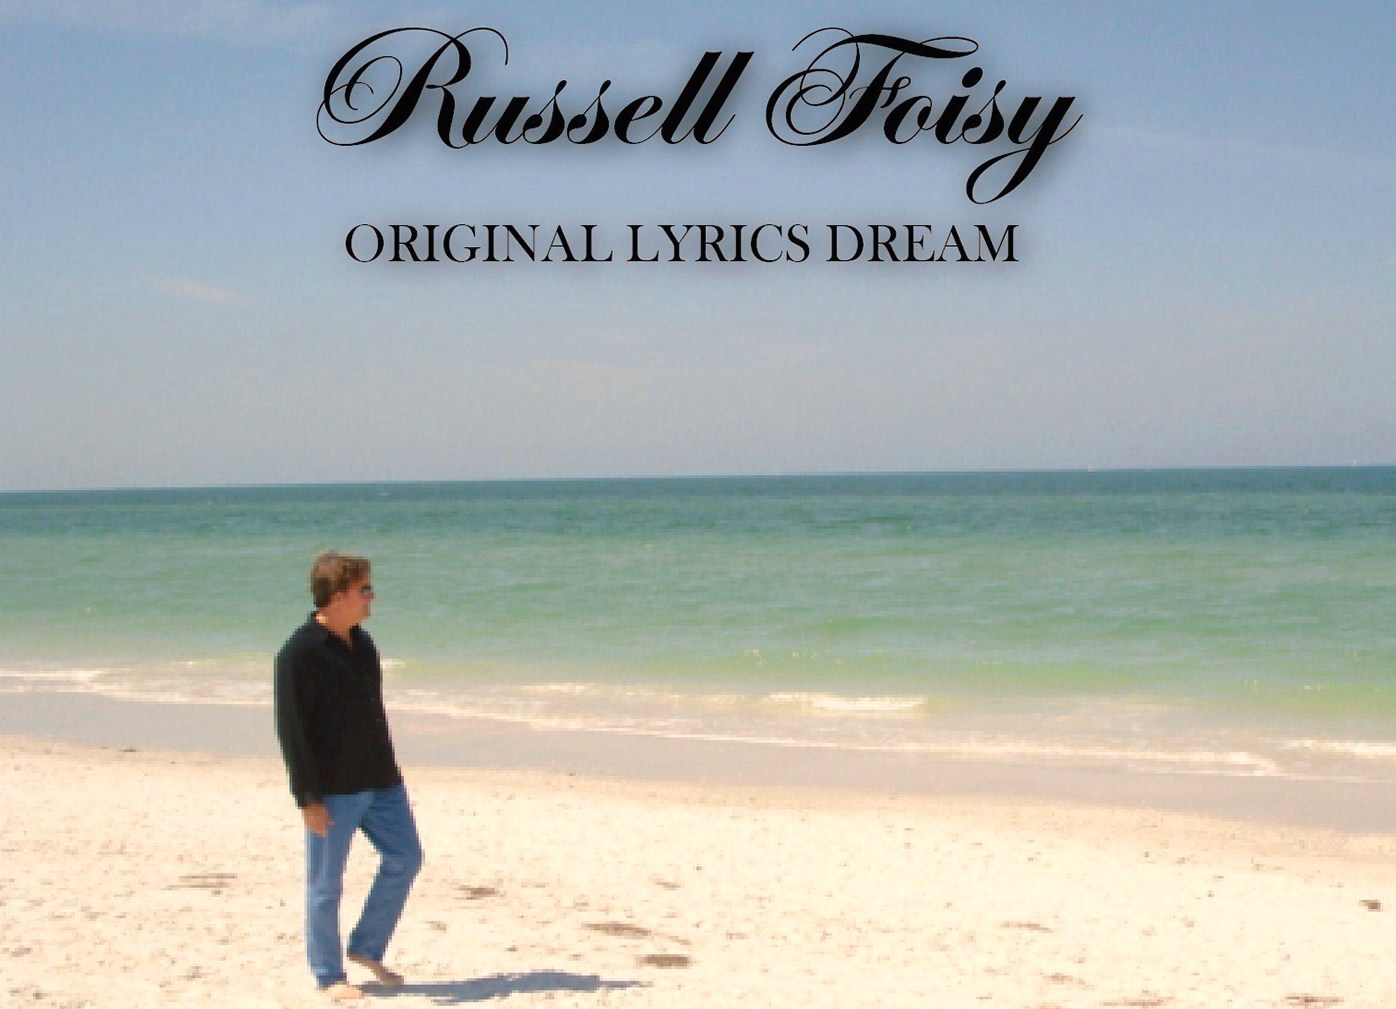 Florida Songwriter Russell Foisy